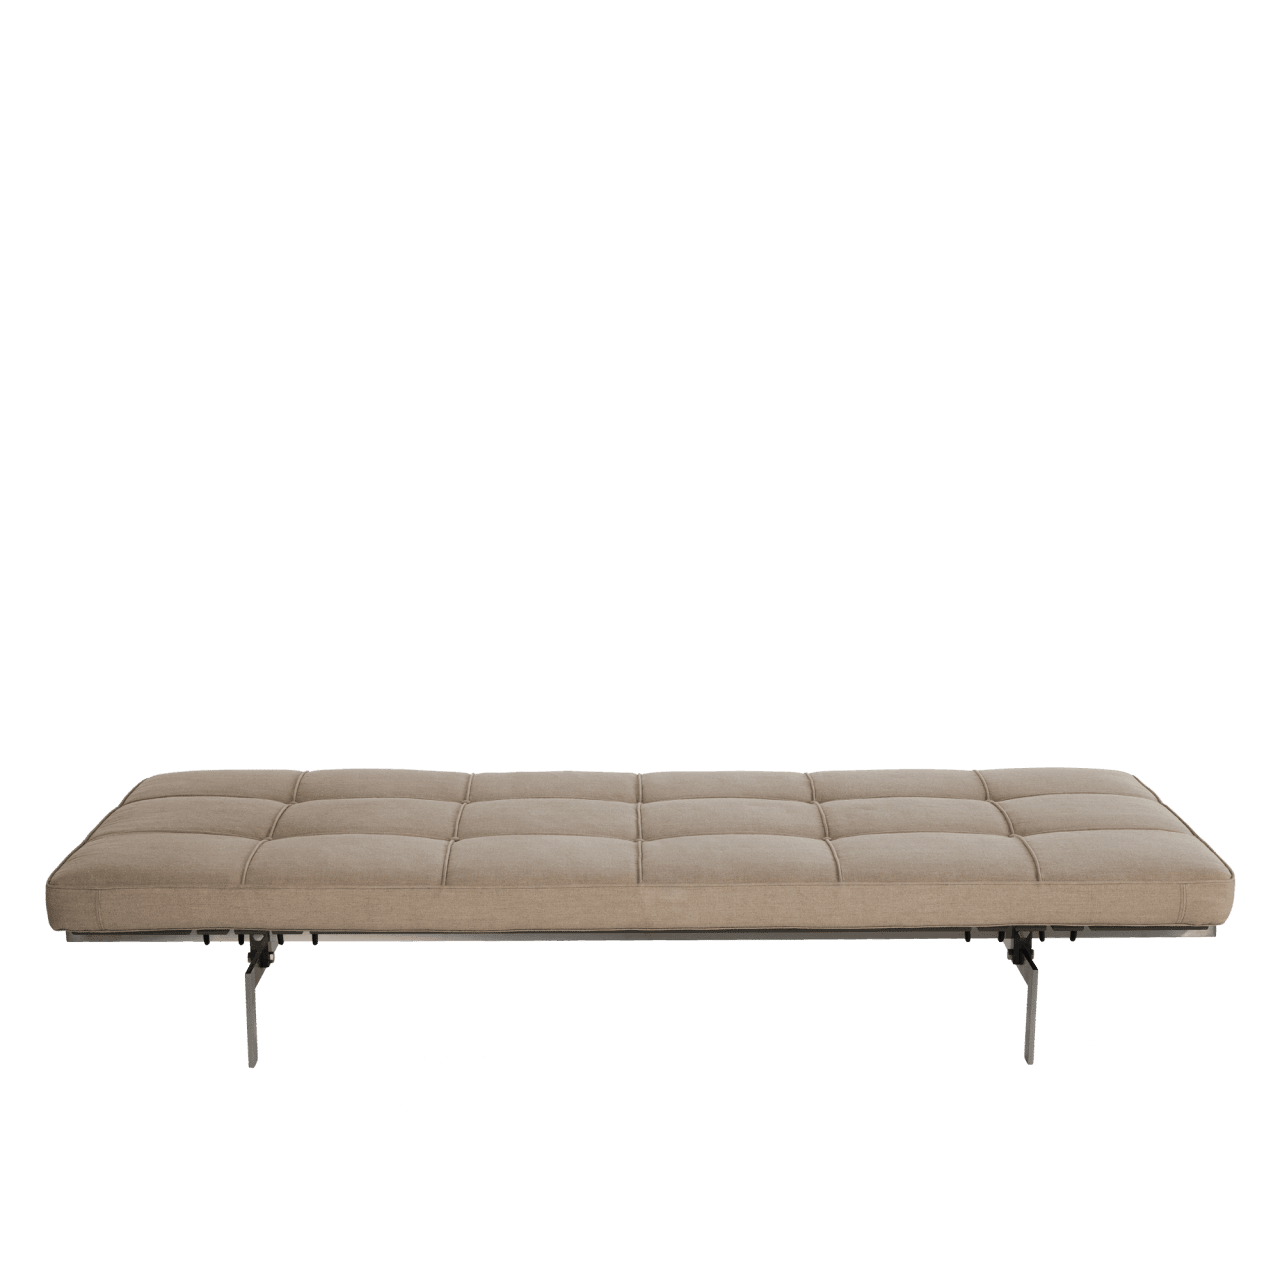 PK80 Daybed